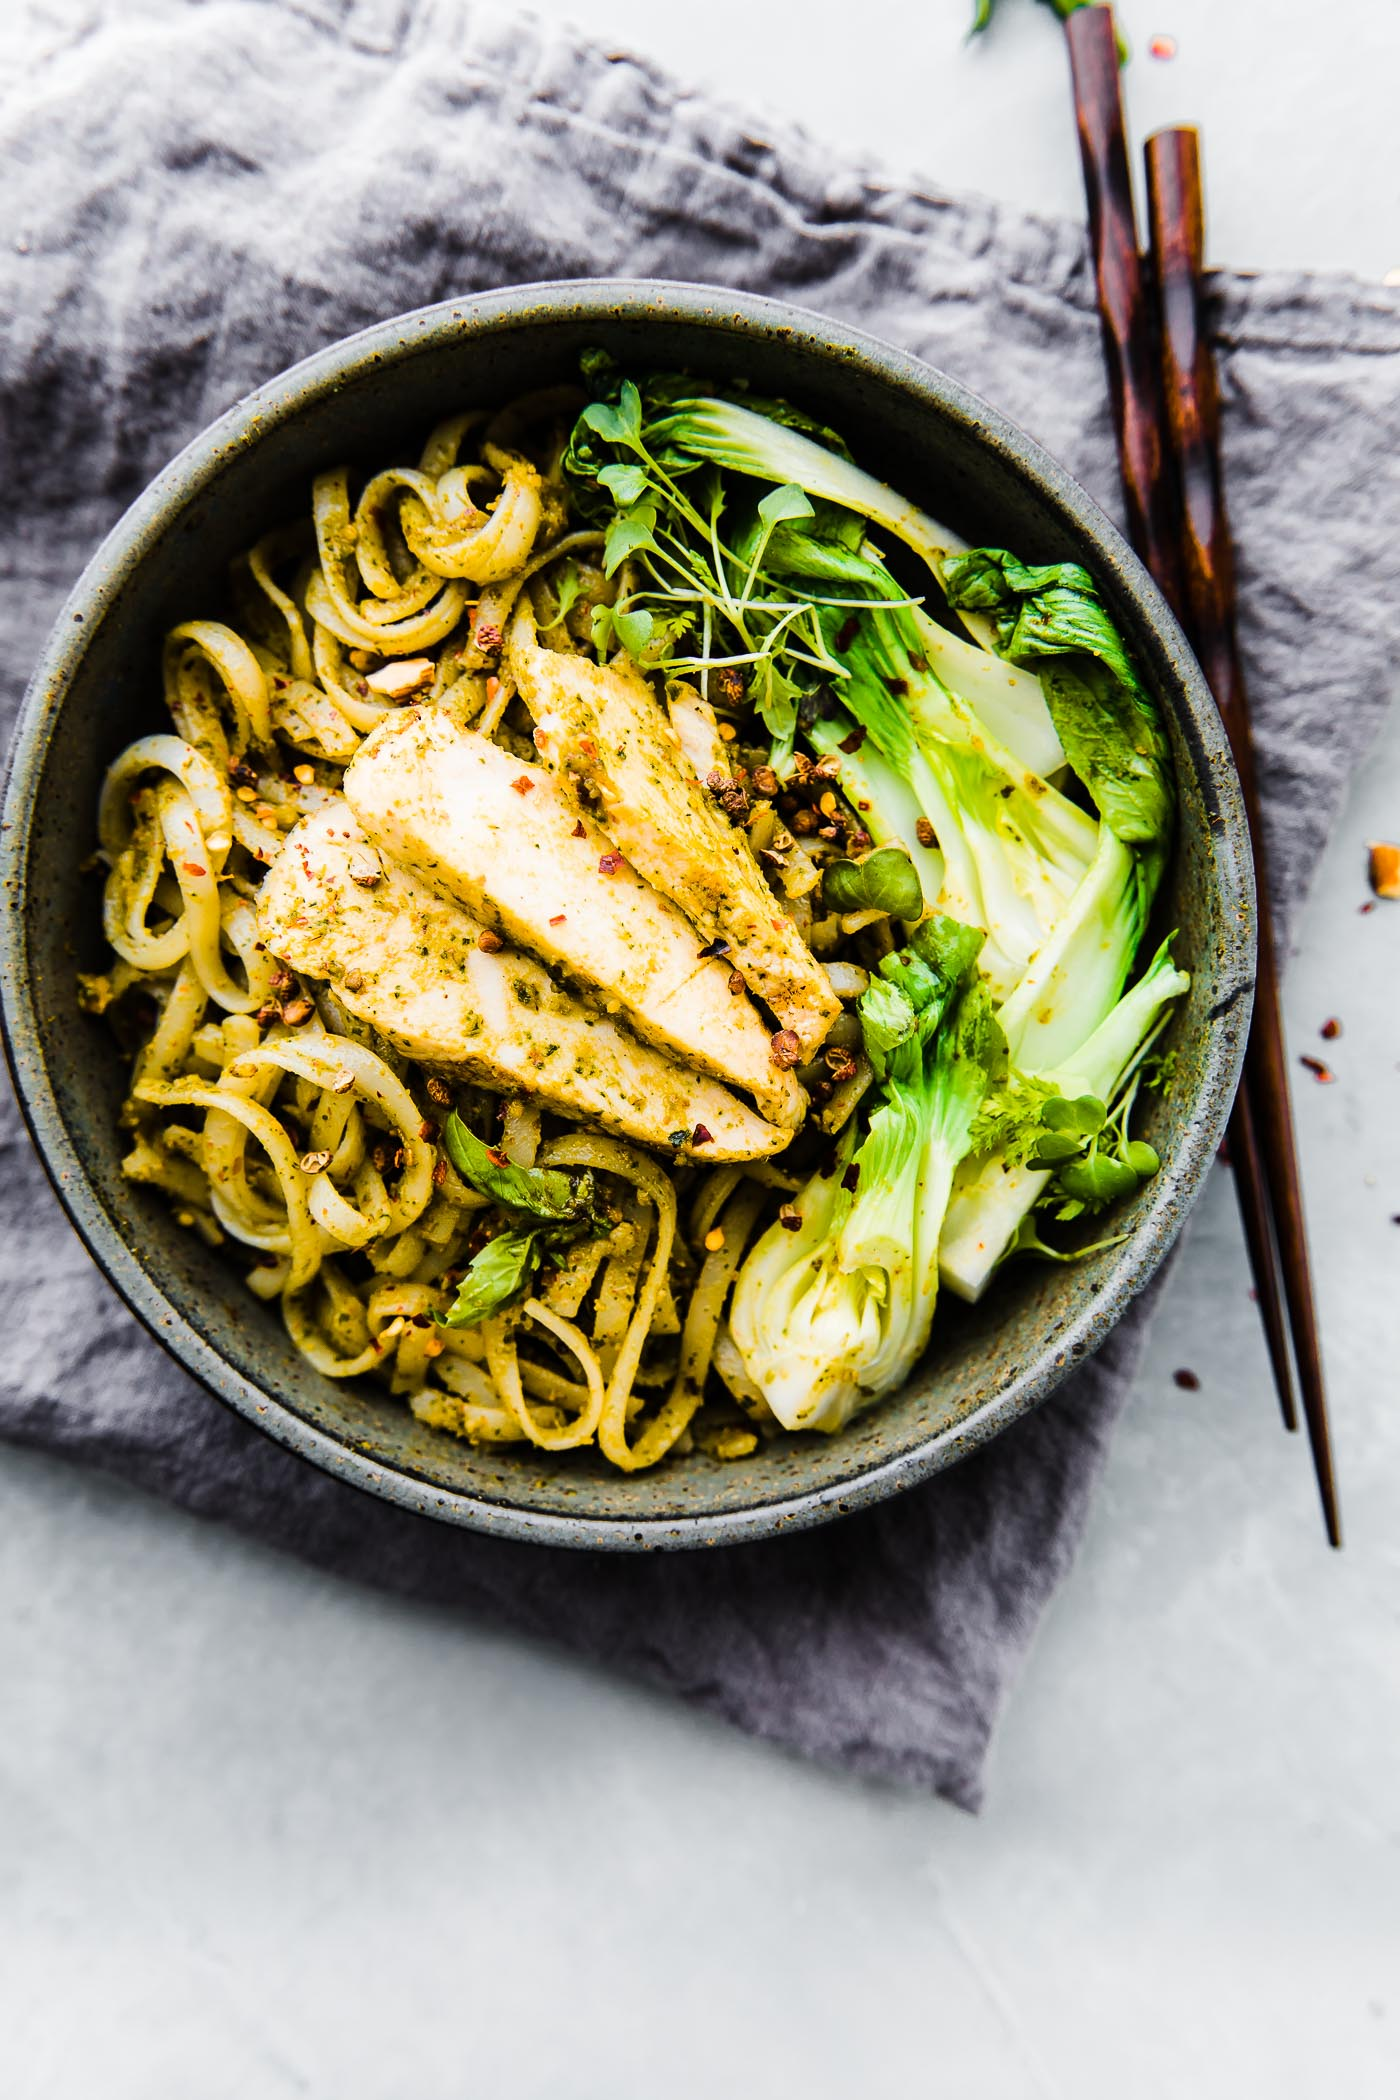 Asian chicken and noodles stir fry dinner